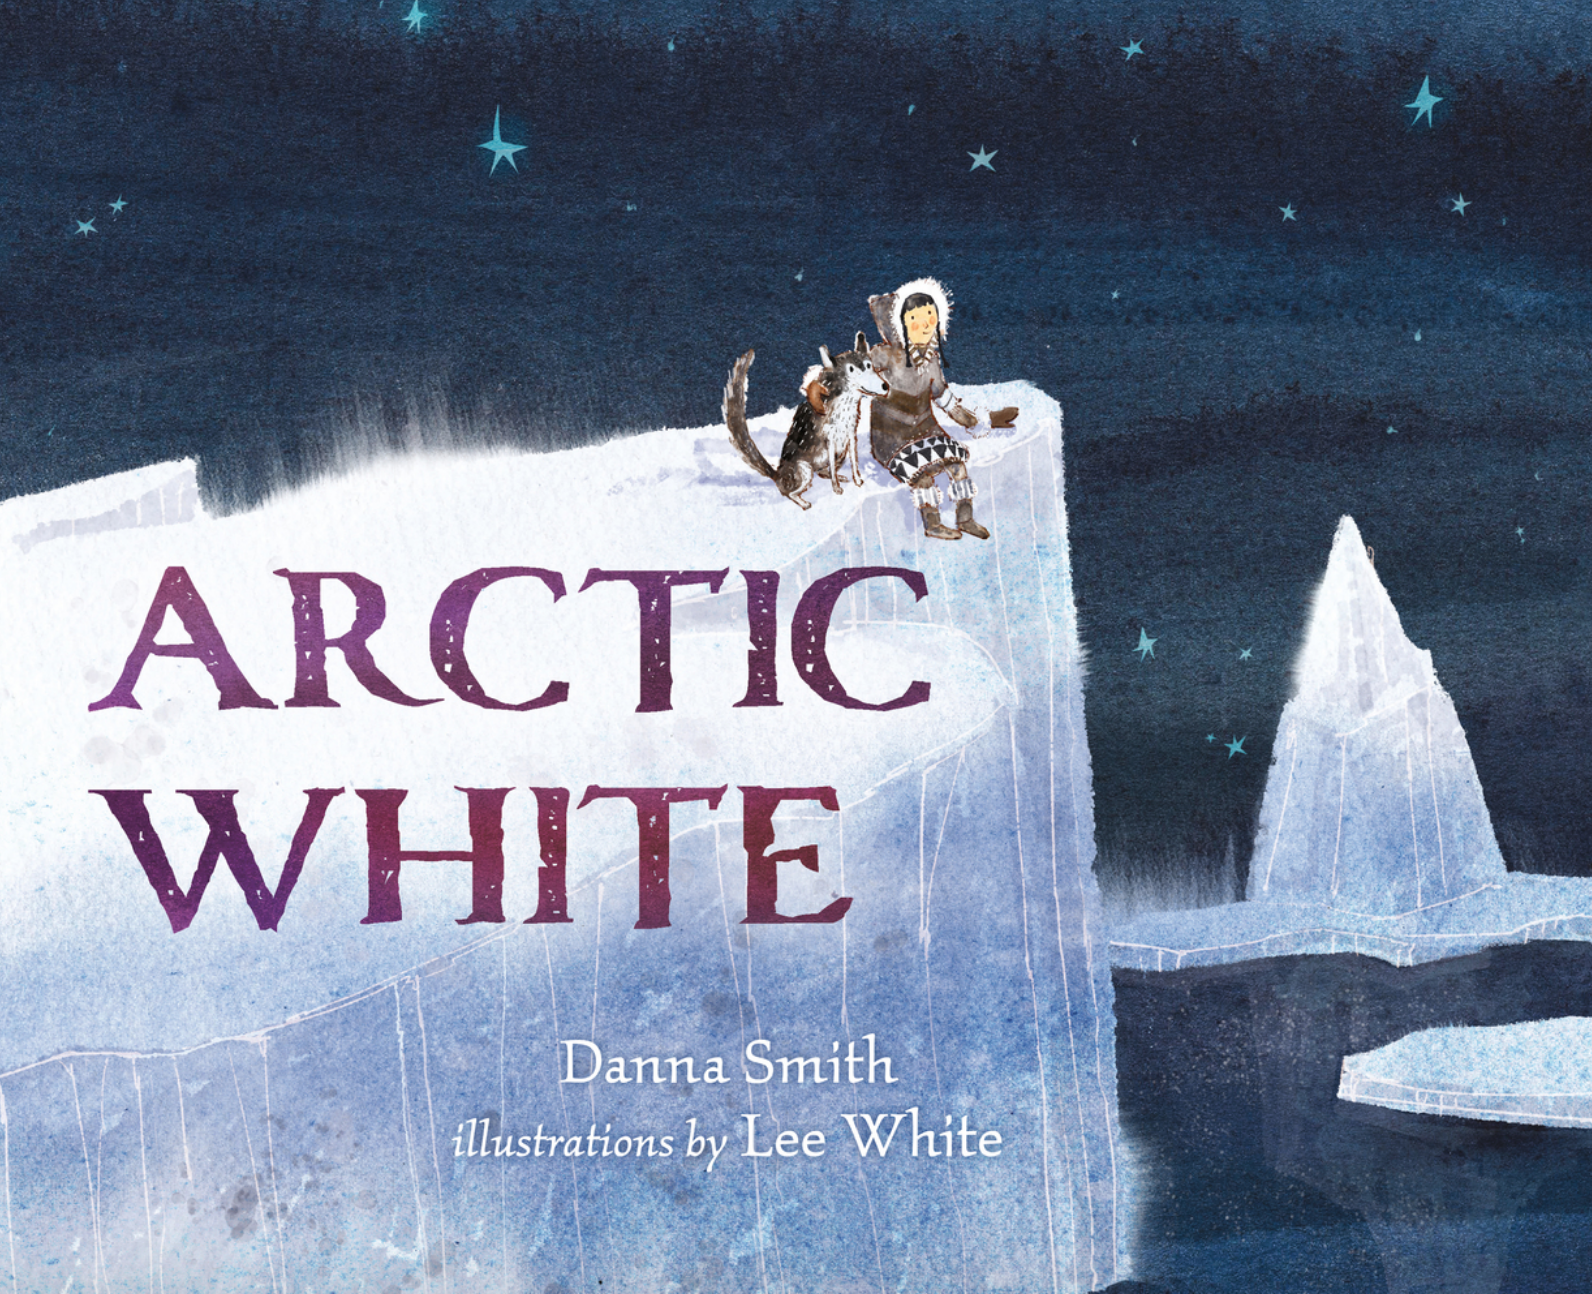 Arctic White - Written by Danna Smith, Illustrated by Lee WhitePublication Date: 1/5/16When you live in the Arctic in winter, everything is a shade of white.A young girl looks around her home in the Arctic and sees only white, white, white...but one day her grandfather takes her on a journey through the tundra.  And at the end of their cold walk across the ice, they find something special that brings color into their world.